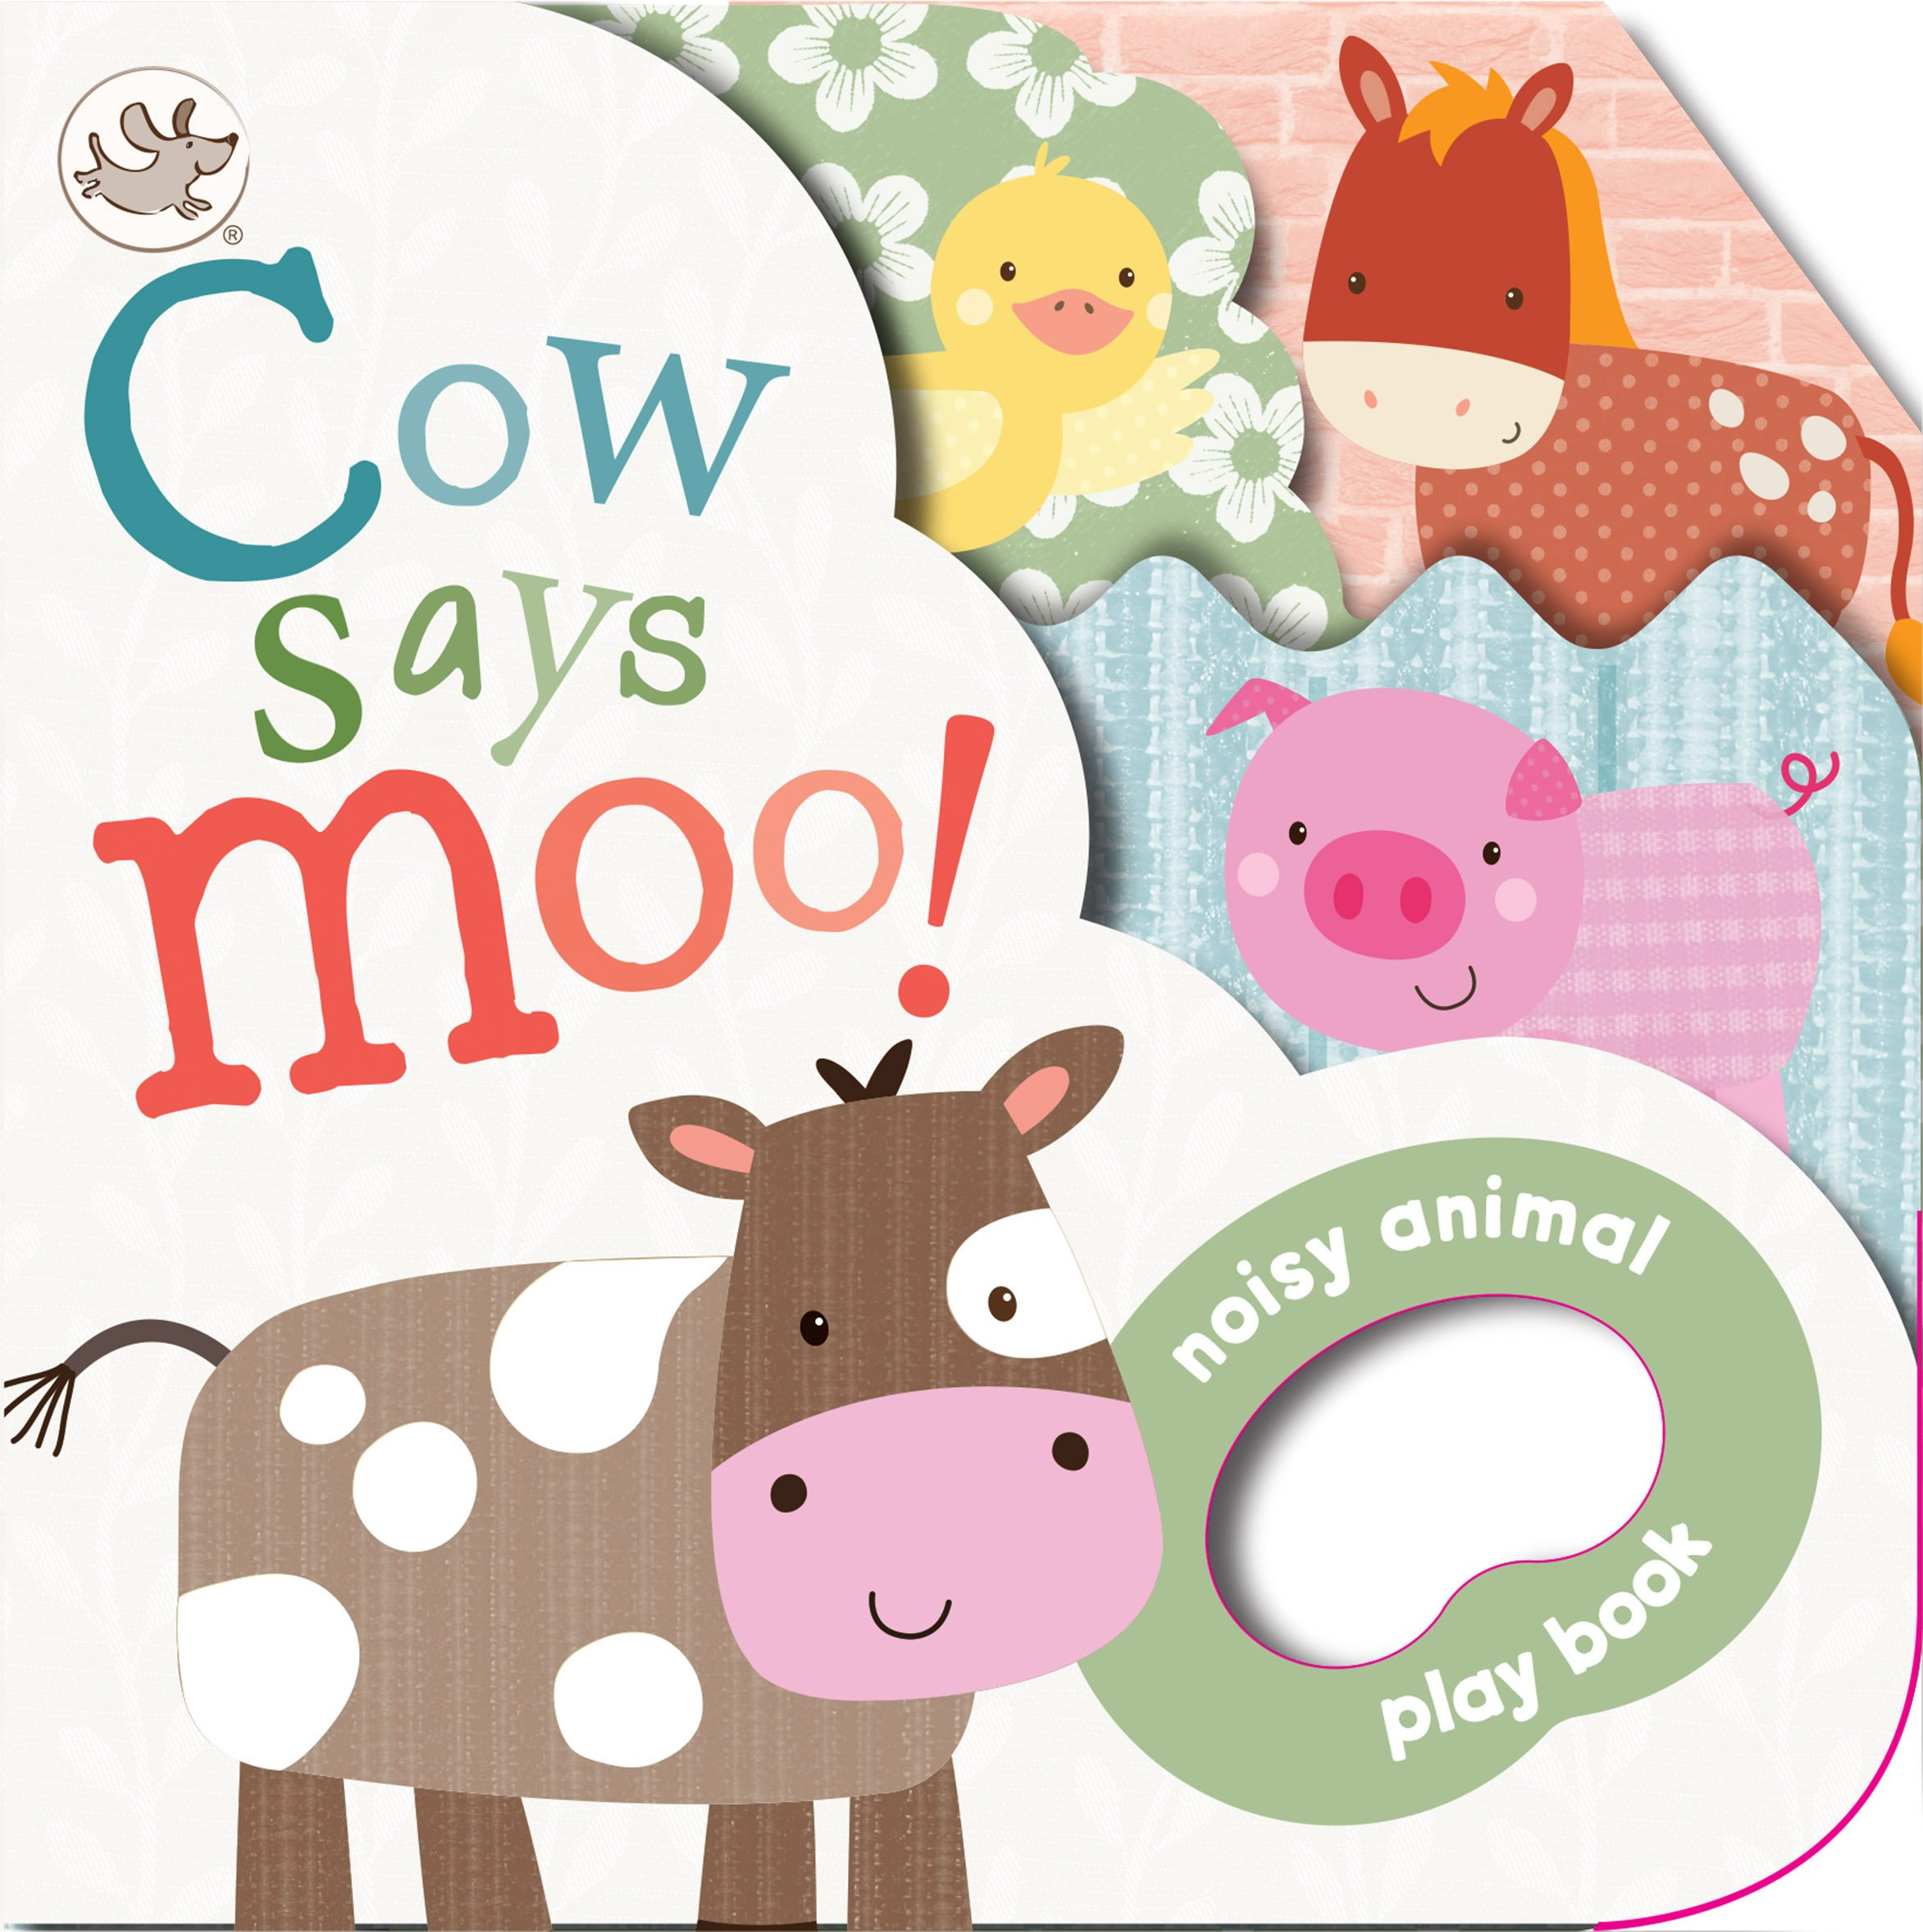 Download Cow Says Moo!: Noisy Animal Playbook ebook